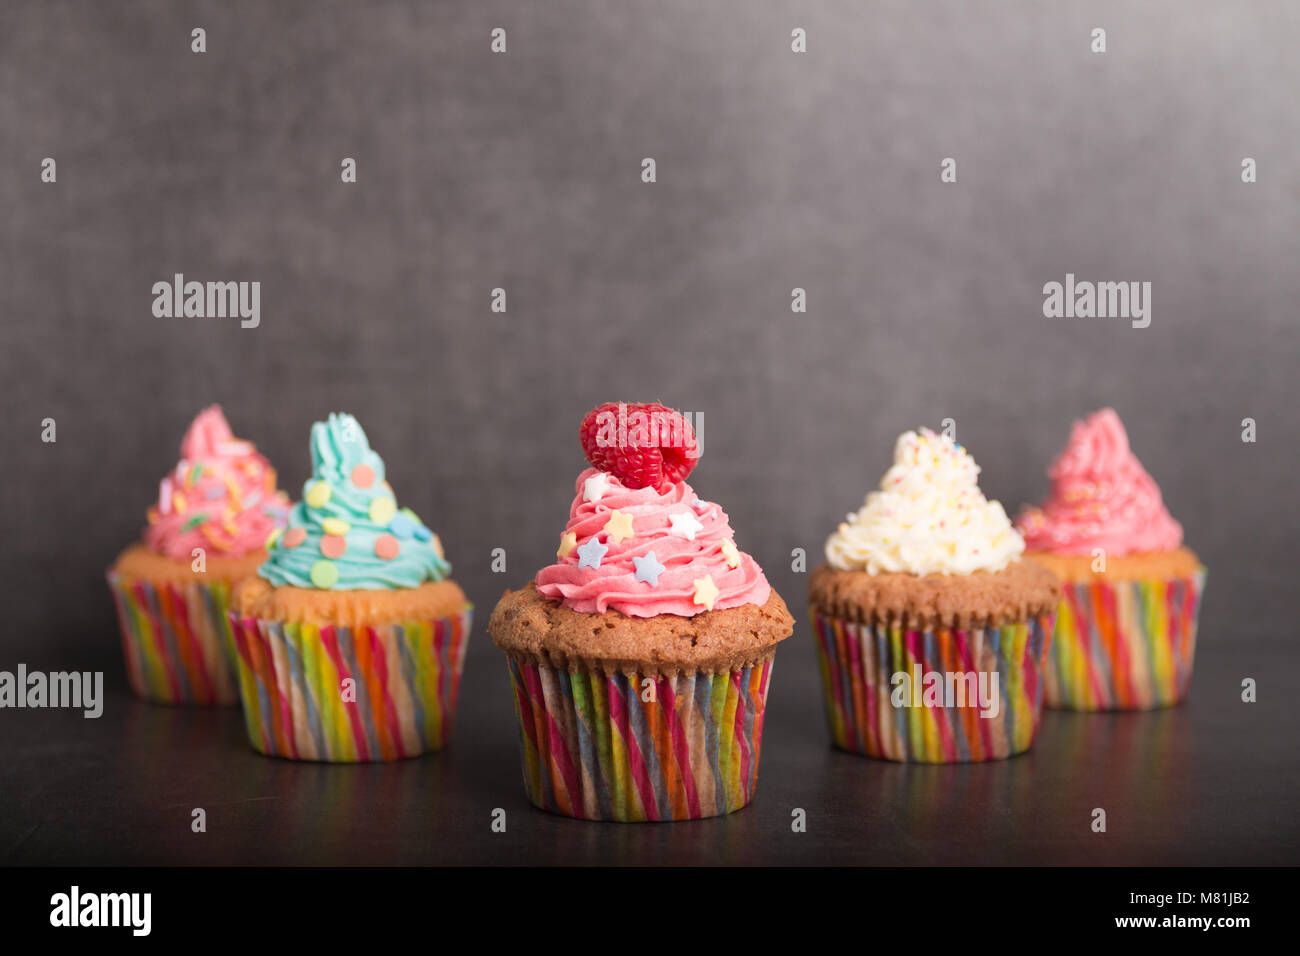 home baked cupcakes with colorful frosting and fruit - Stock Image